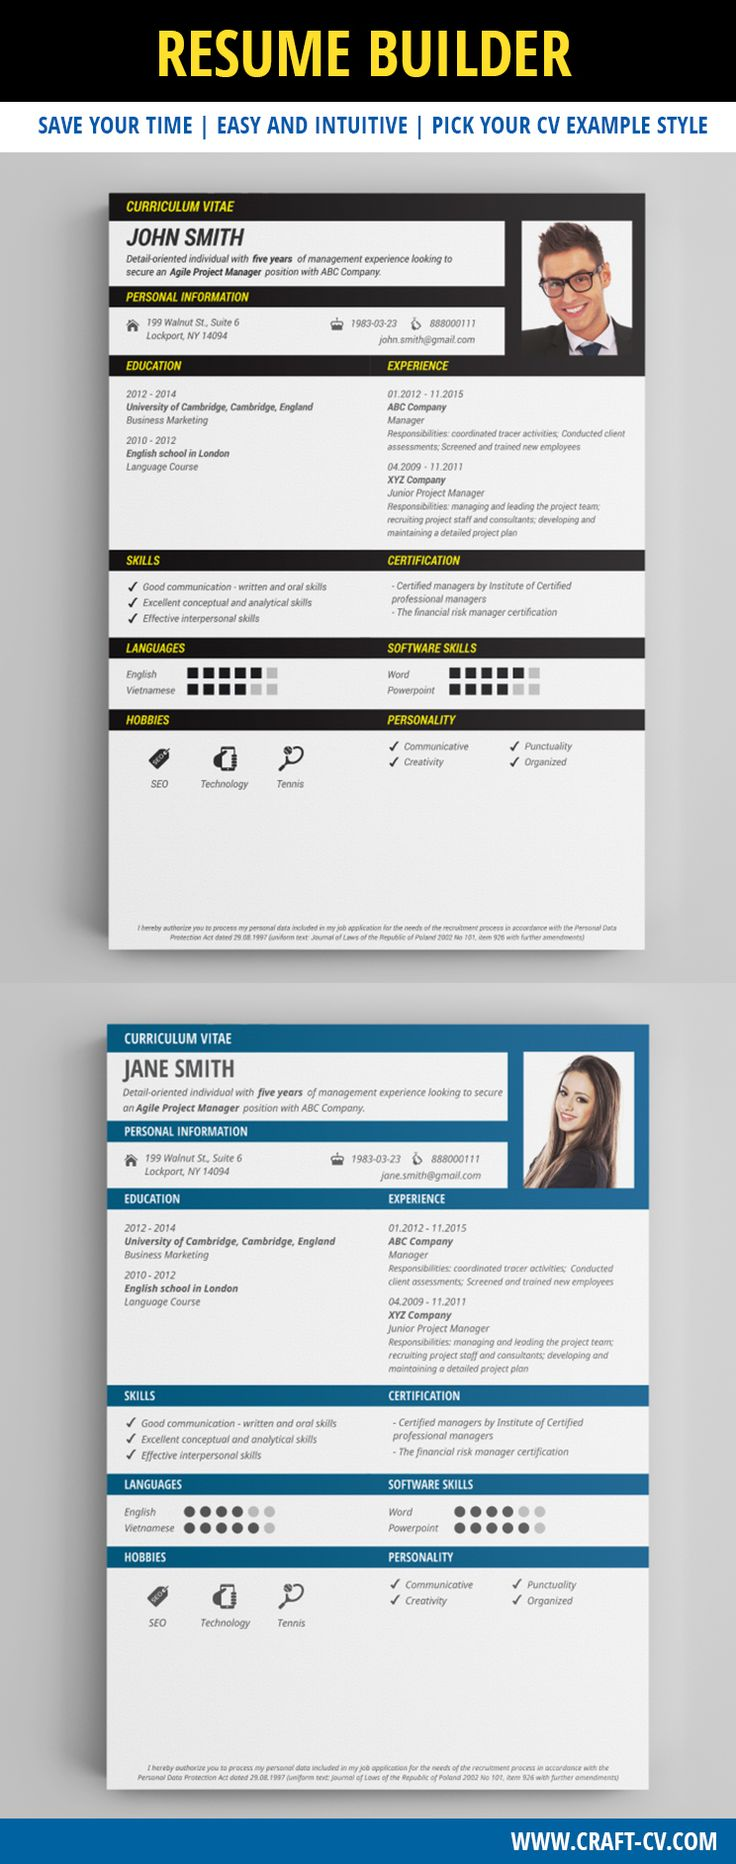 21 Best Creative Cv Templates Download Images On Pinterest